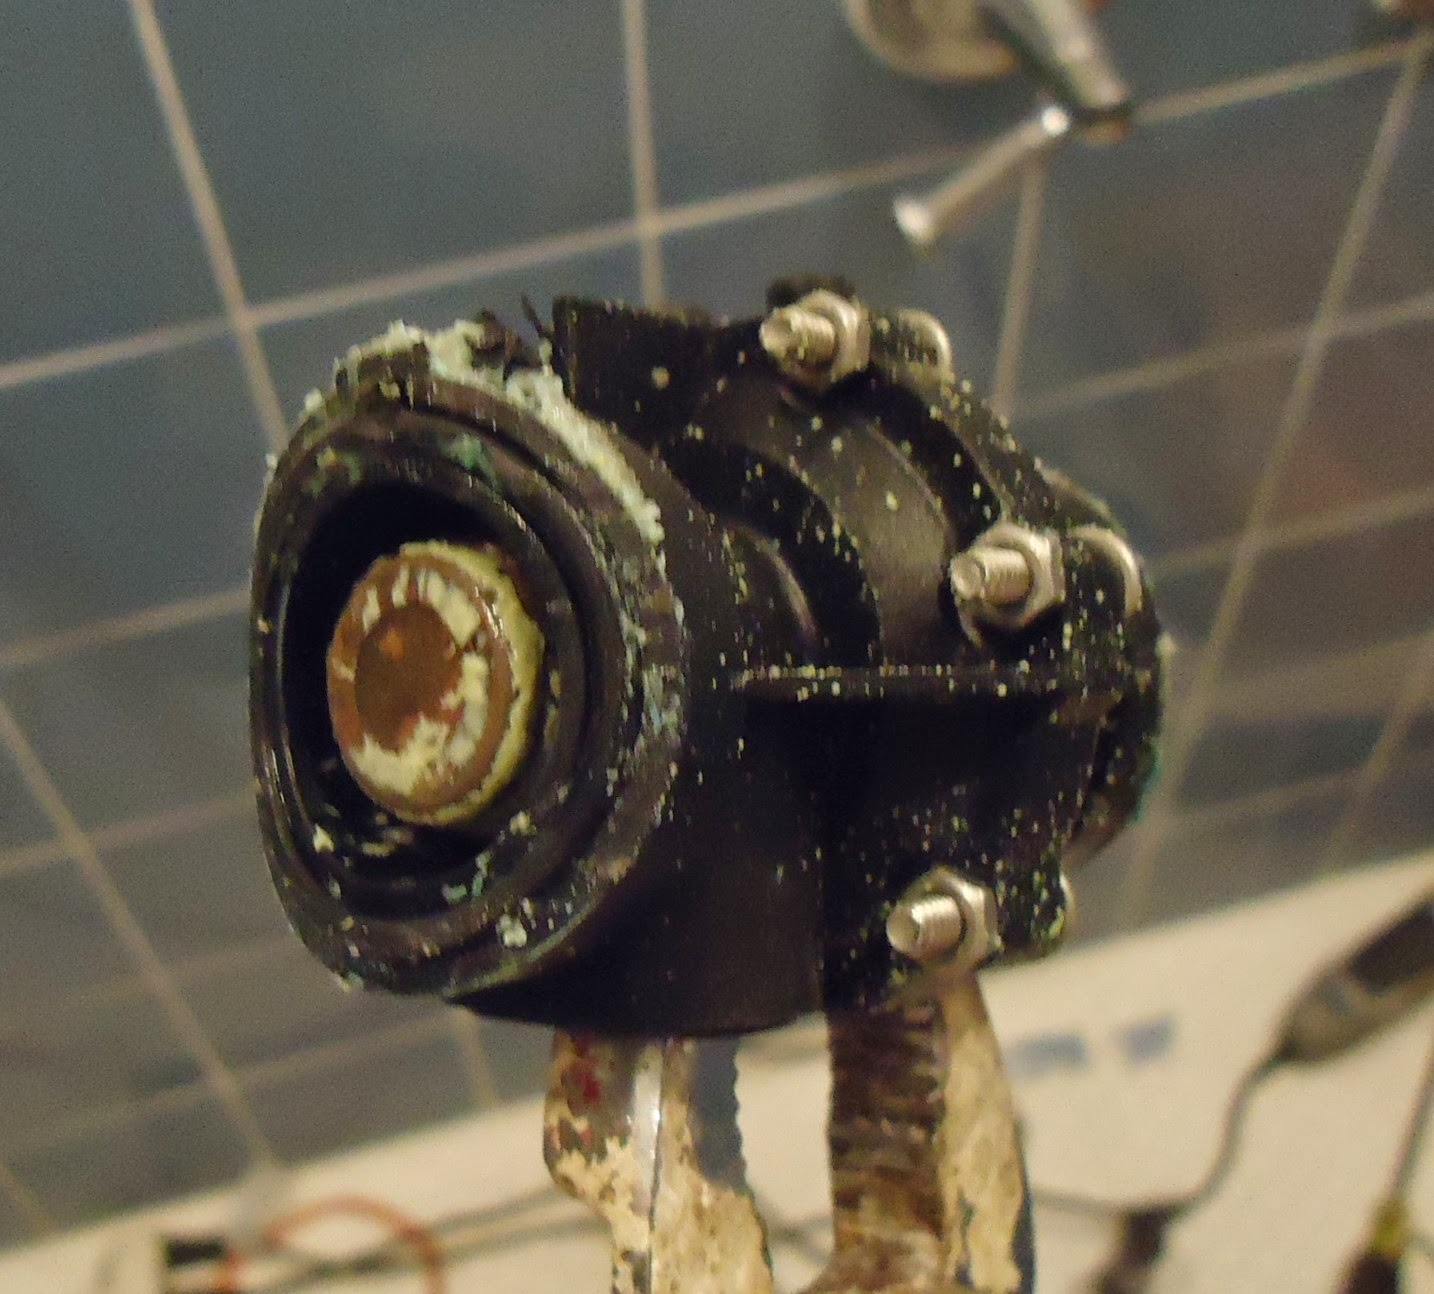 filekohler shower valve replacement old diverter with buildup being removedjpg